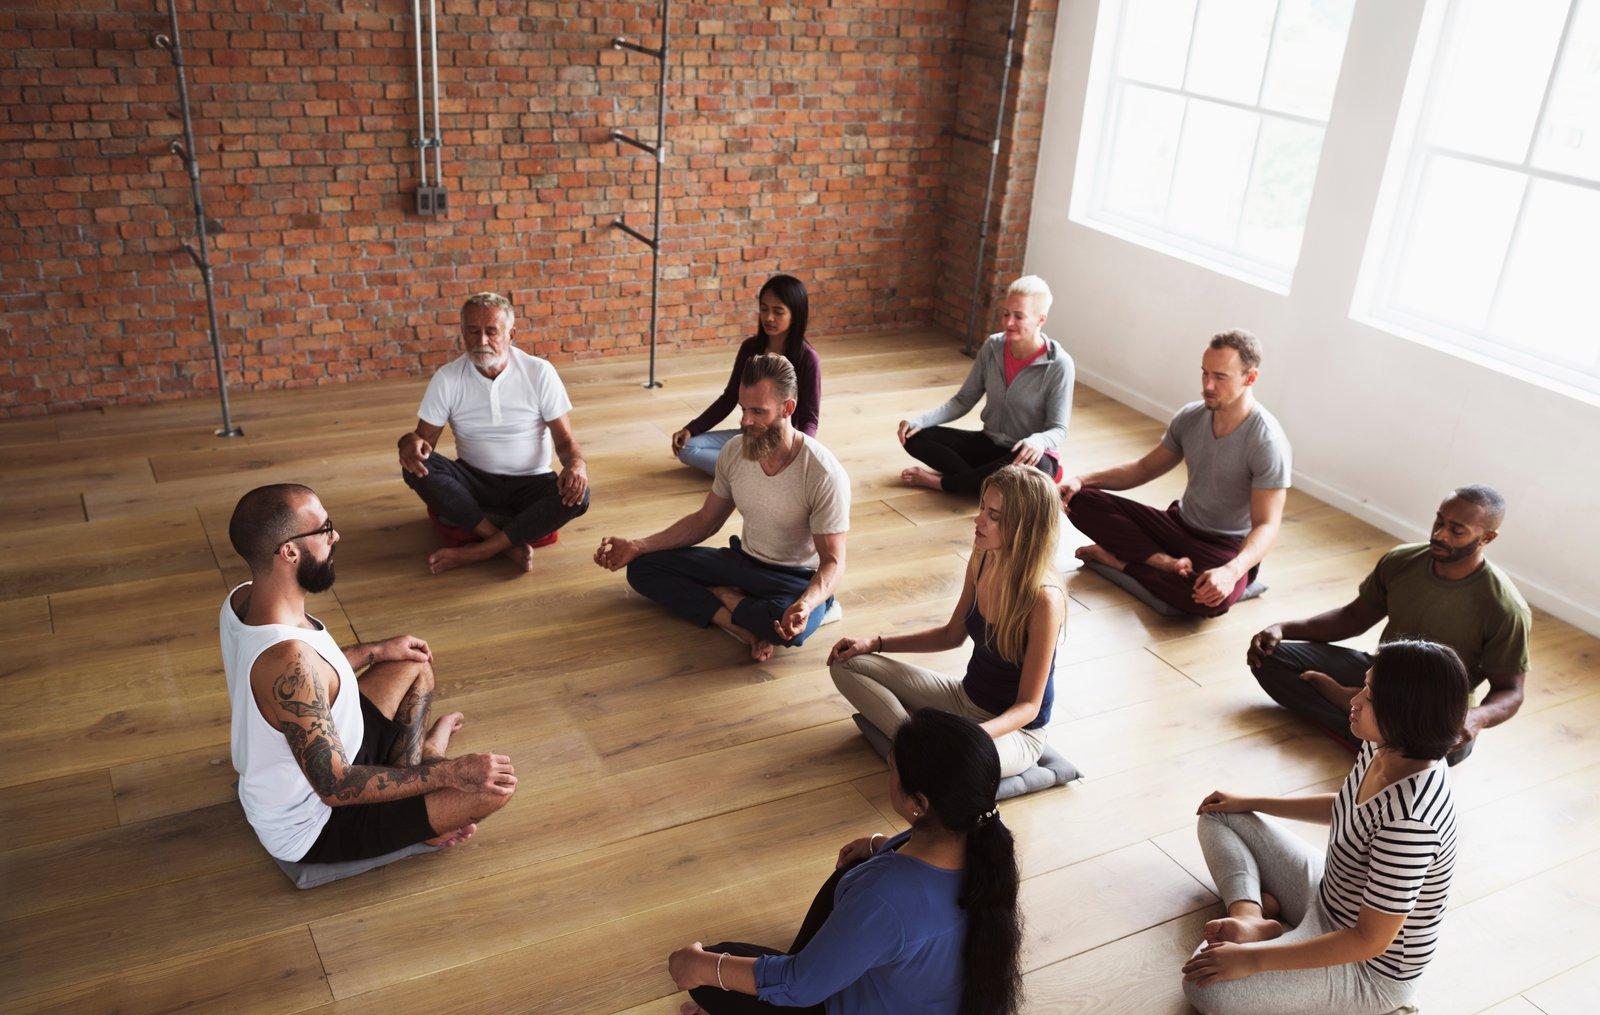 Guided meditation classes at work